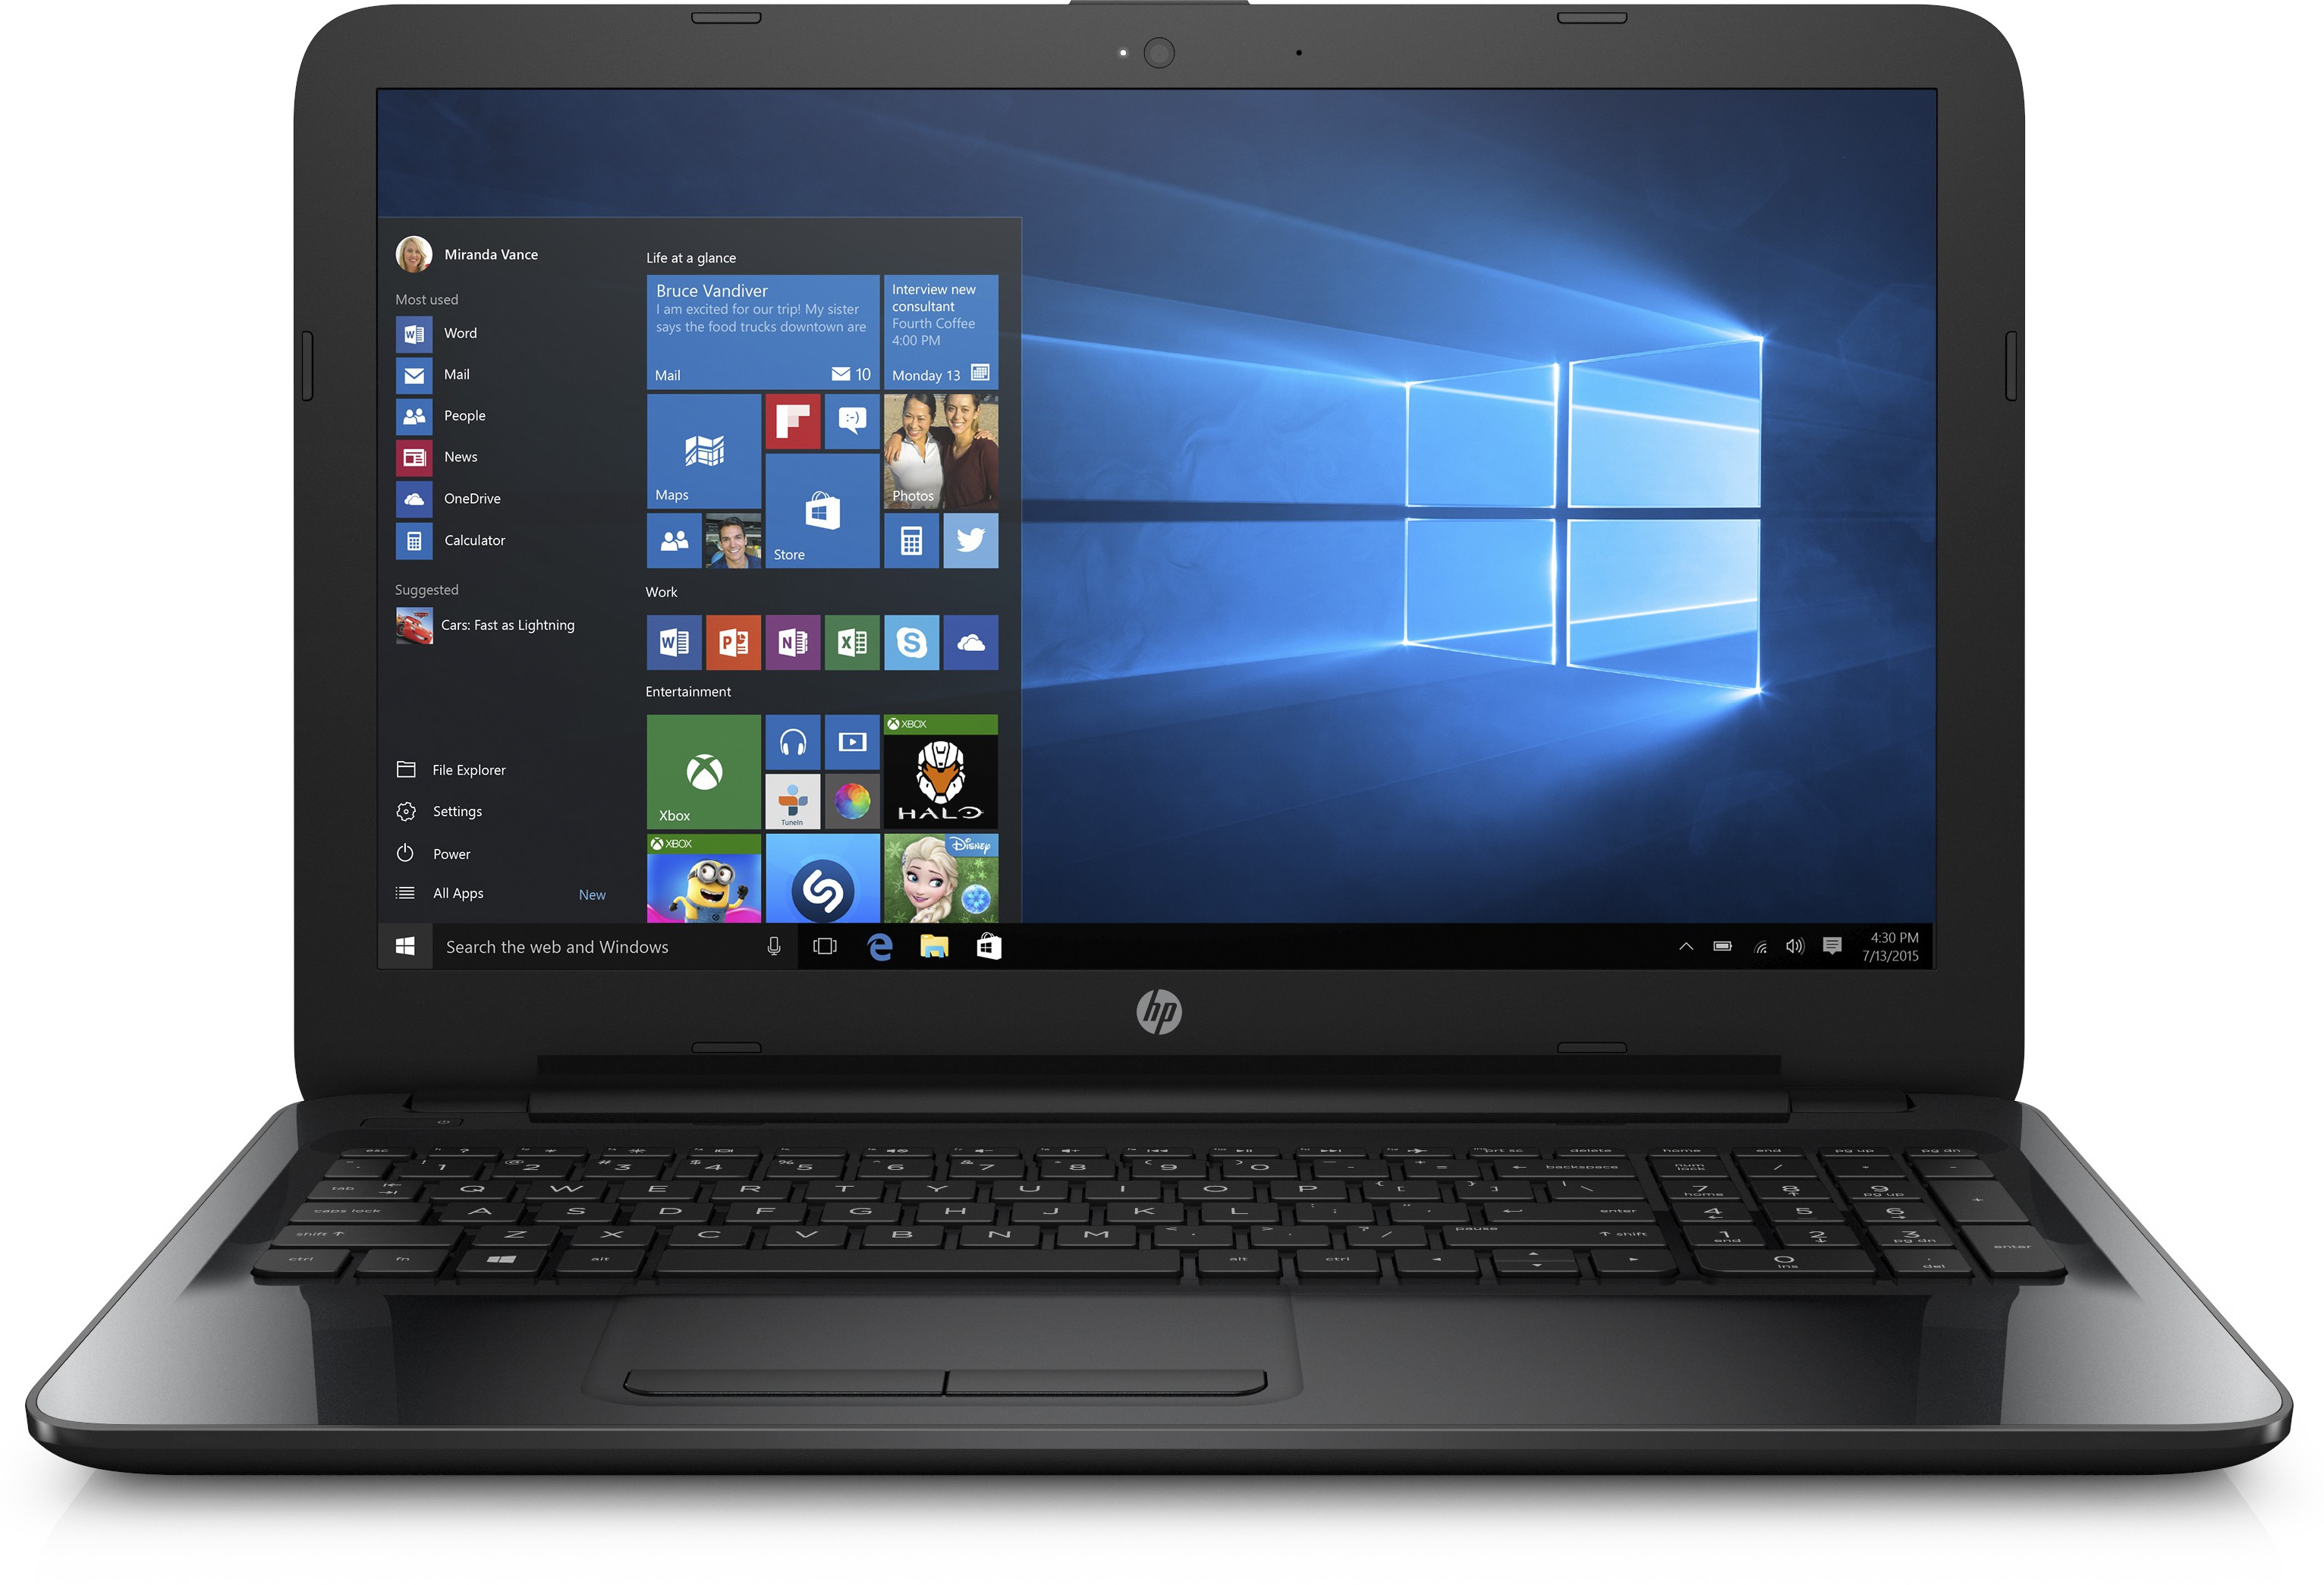 Deals - Jodhpur - From ₹18990 <br> AMD Powered Laptops<br> Category - computers<br> Business - Flipkart.com